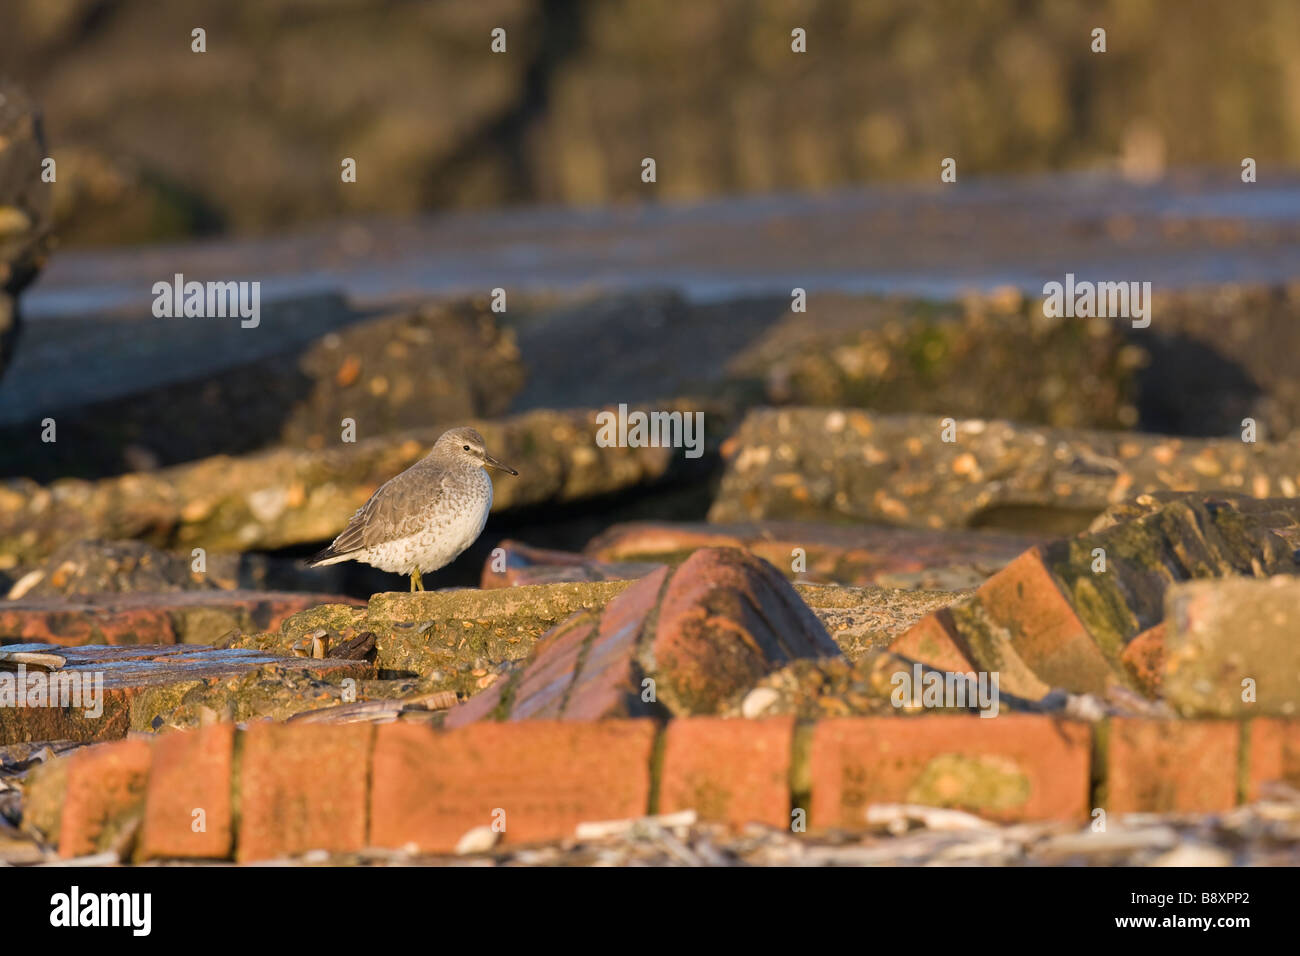 Red Knot Standing Stock Photos Images Alamy Redknot Shoes Tech Brown Calidris Canutus Amongst Bricks Norfolk England Image